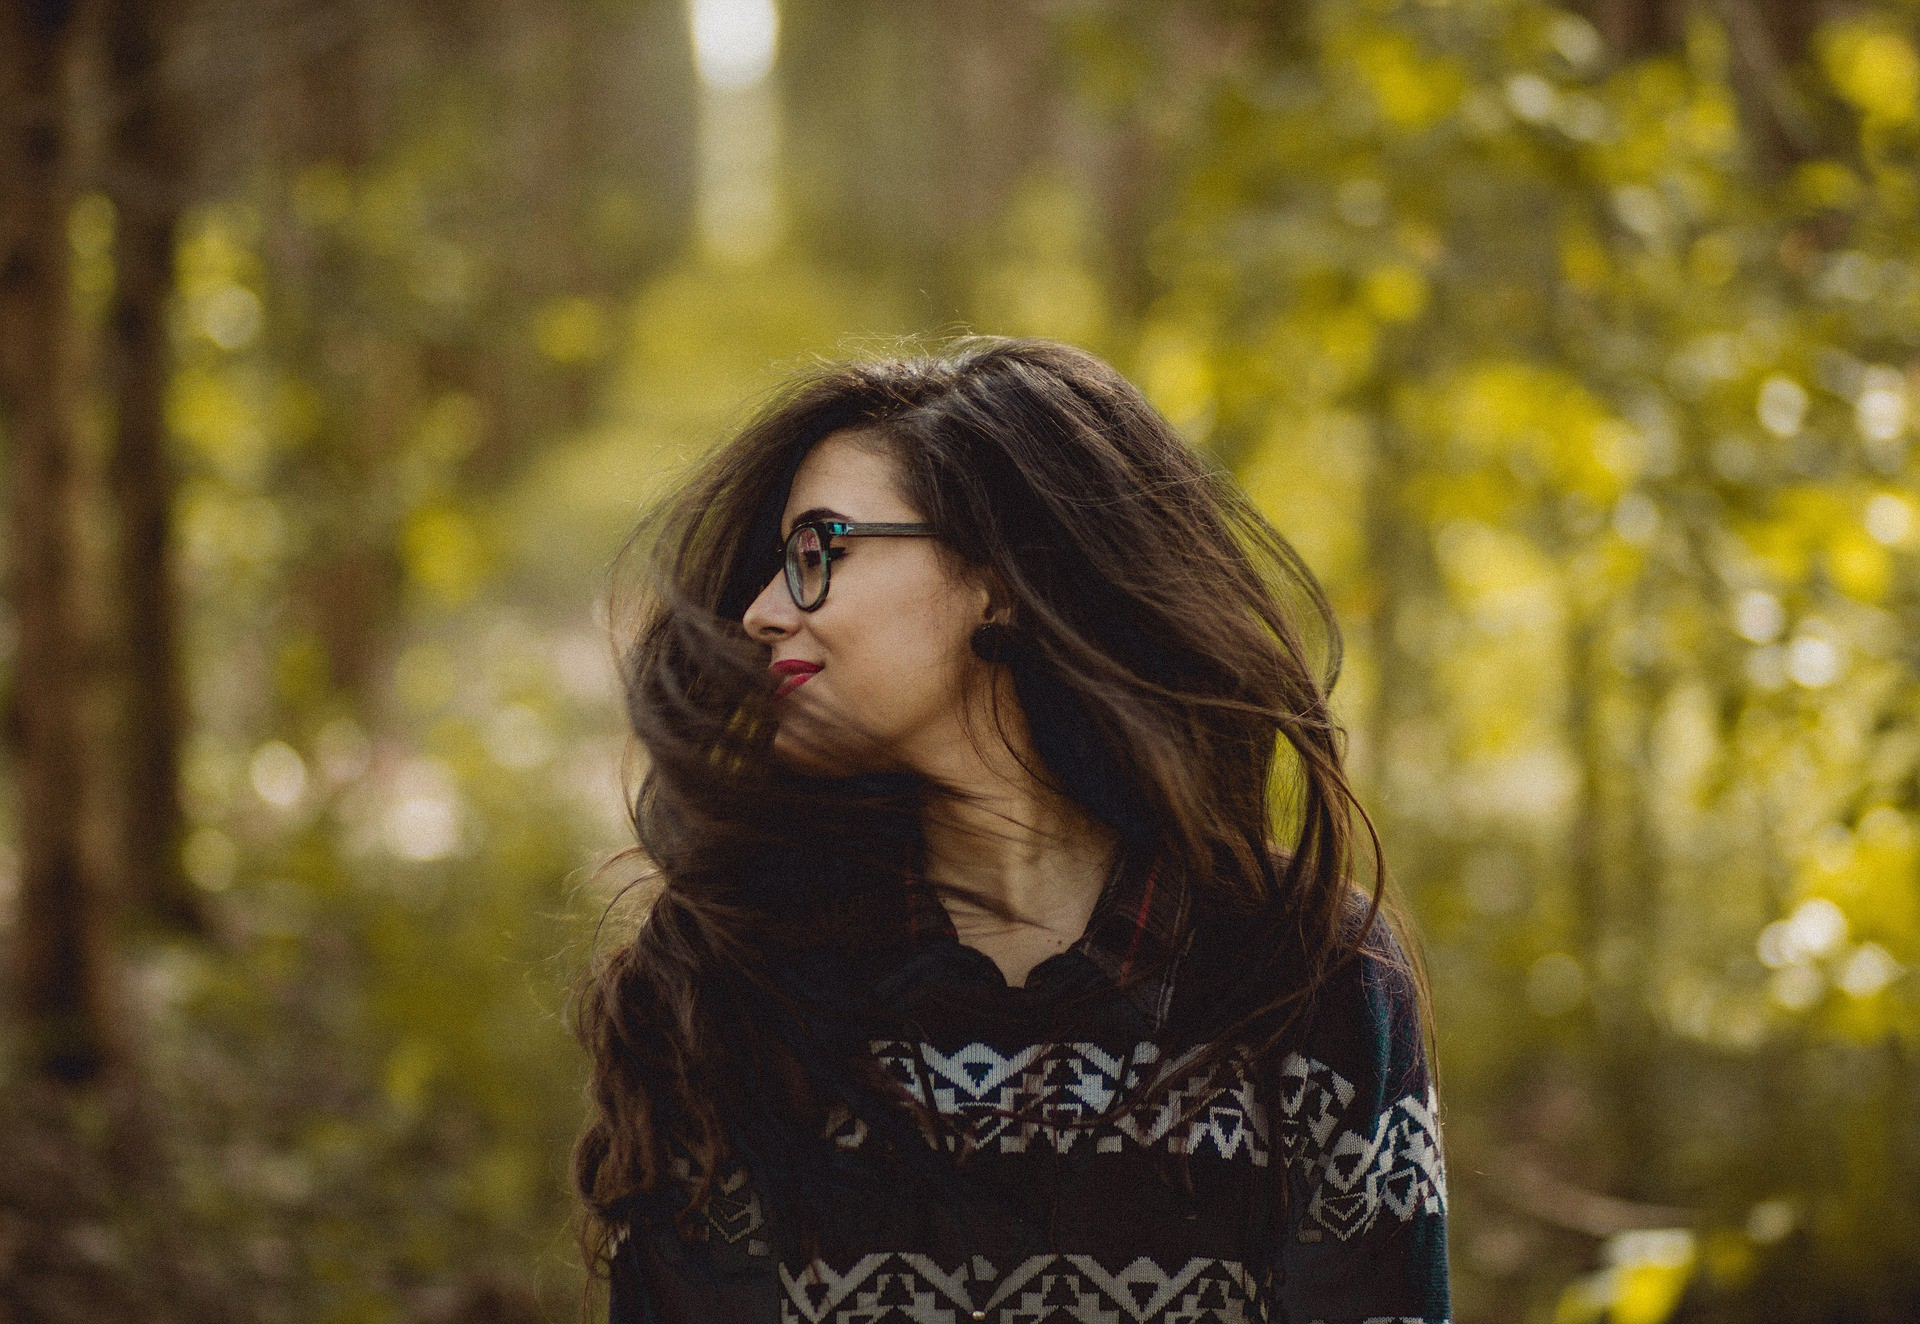 You can't write. Woman tossing her hair in a forest.